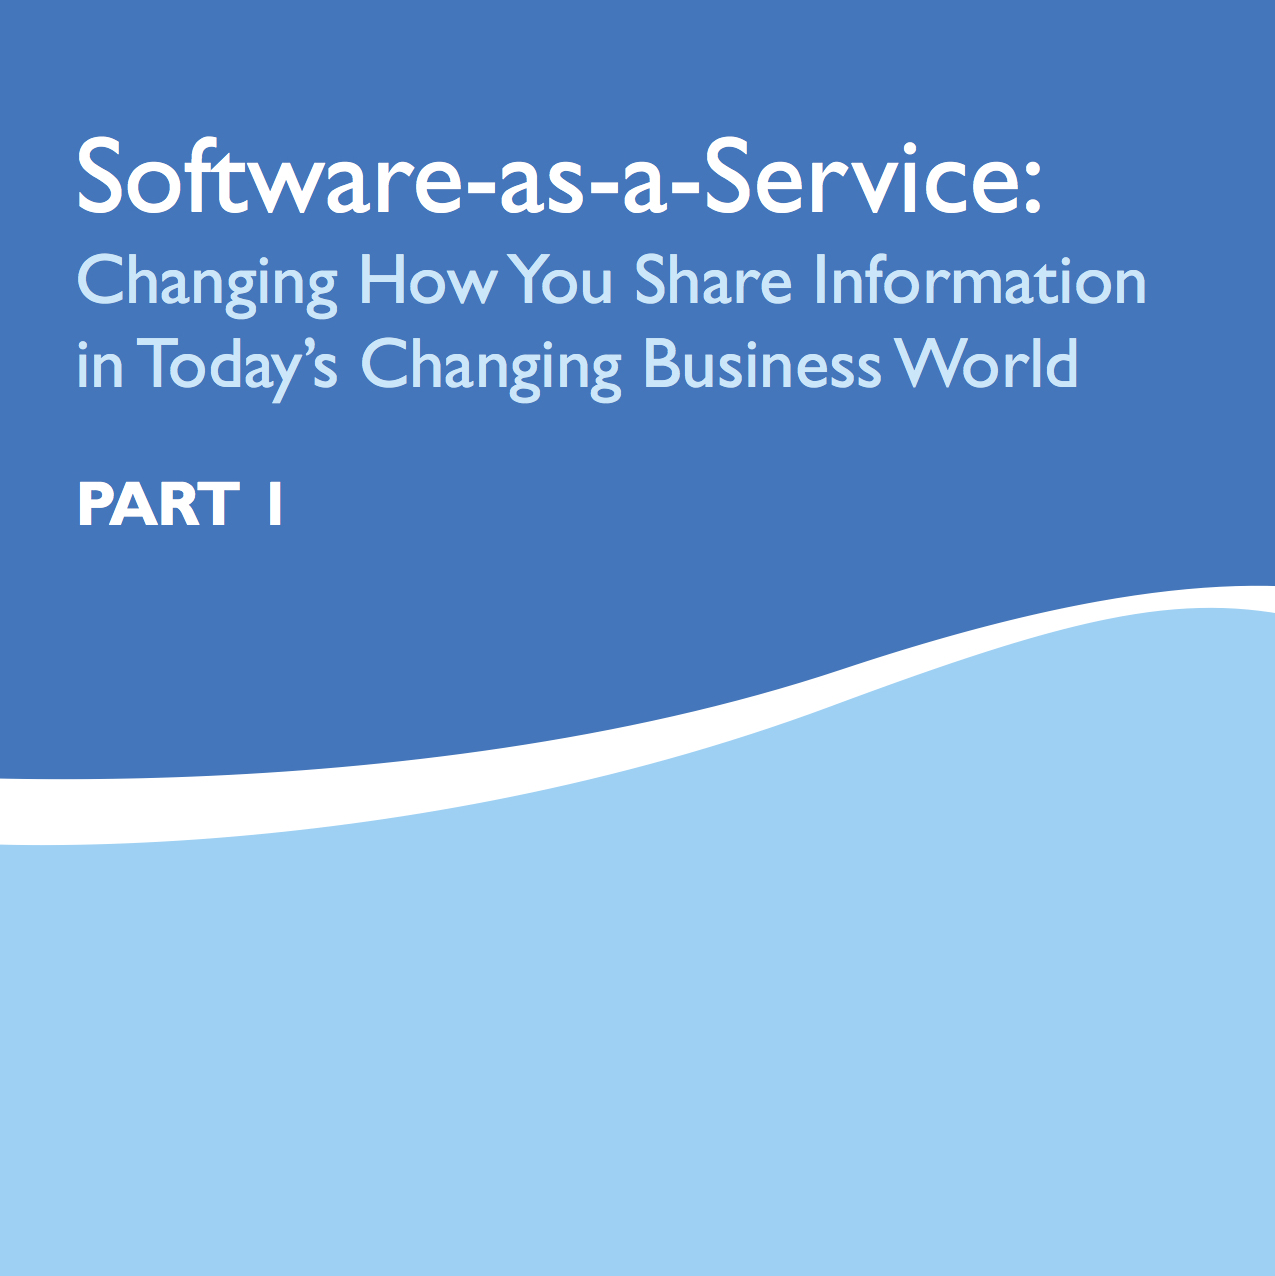 Software-as-a-Service: Changing How you Share Information in Today's Changing Business World, Part I